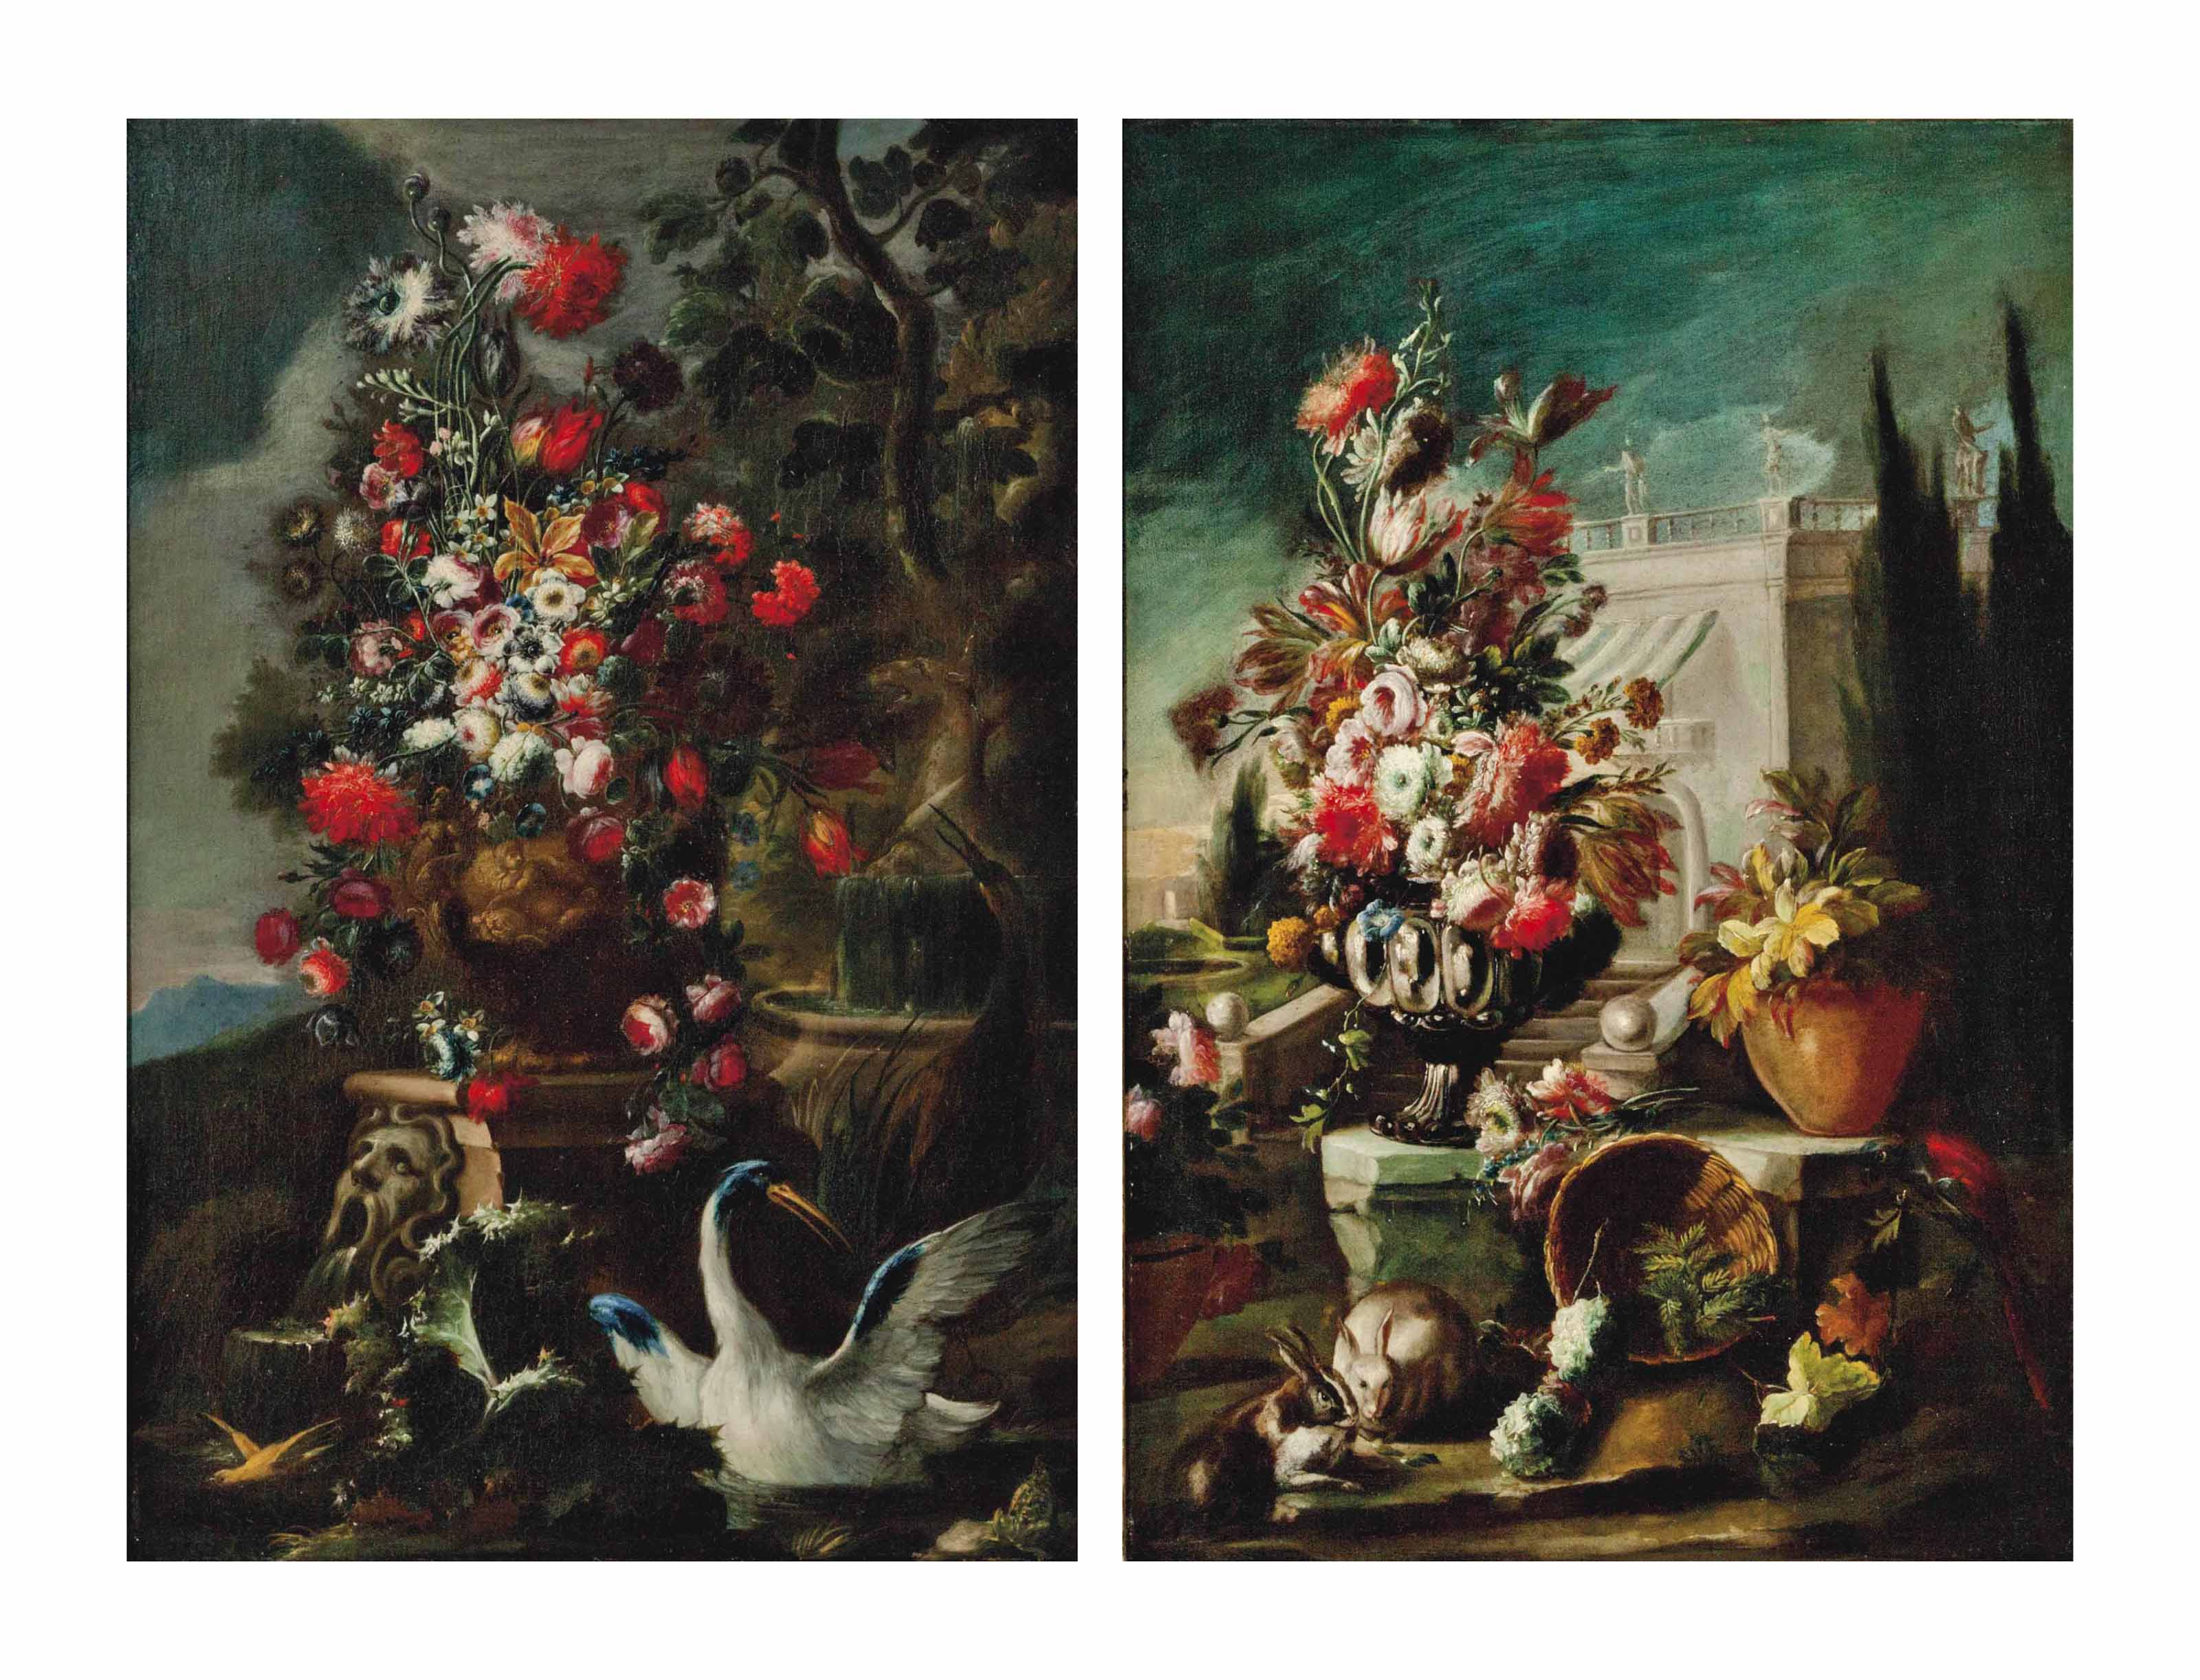 Flowers in a stone vase with exotic birds and a frog, next to a fountain; and Flowers in a silver vessel in a palace garden with a parrot, rabbits and other flowers